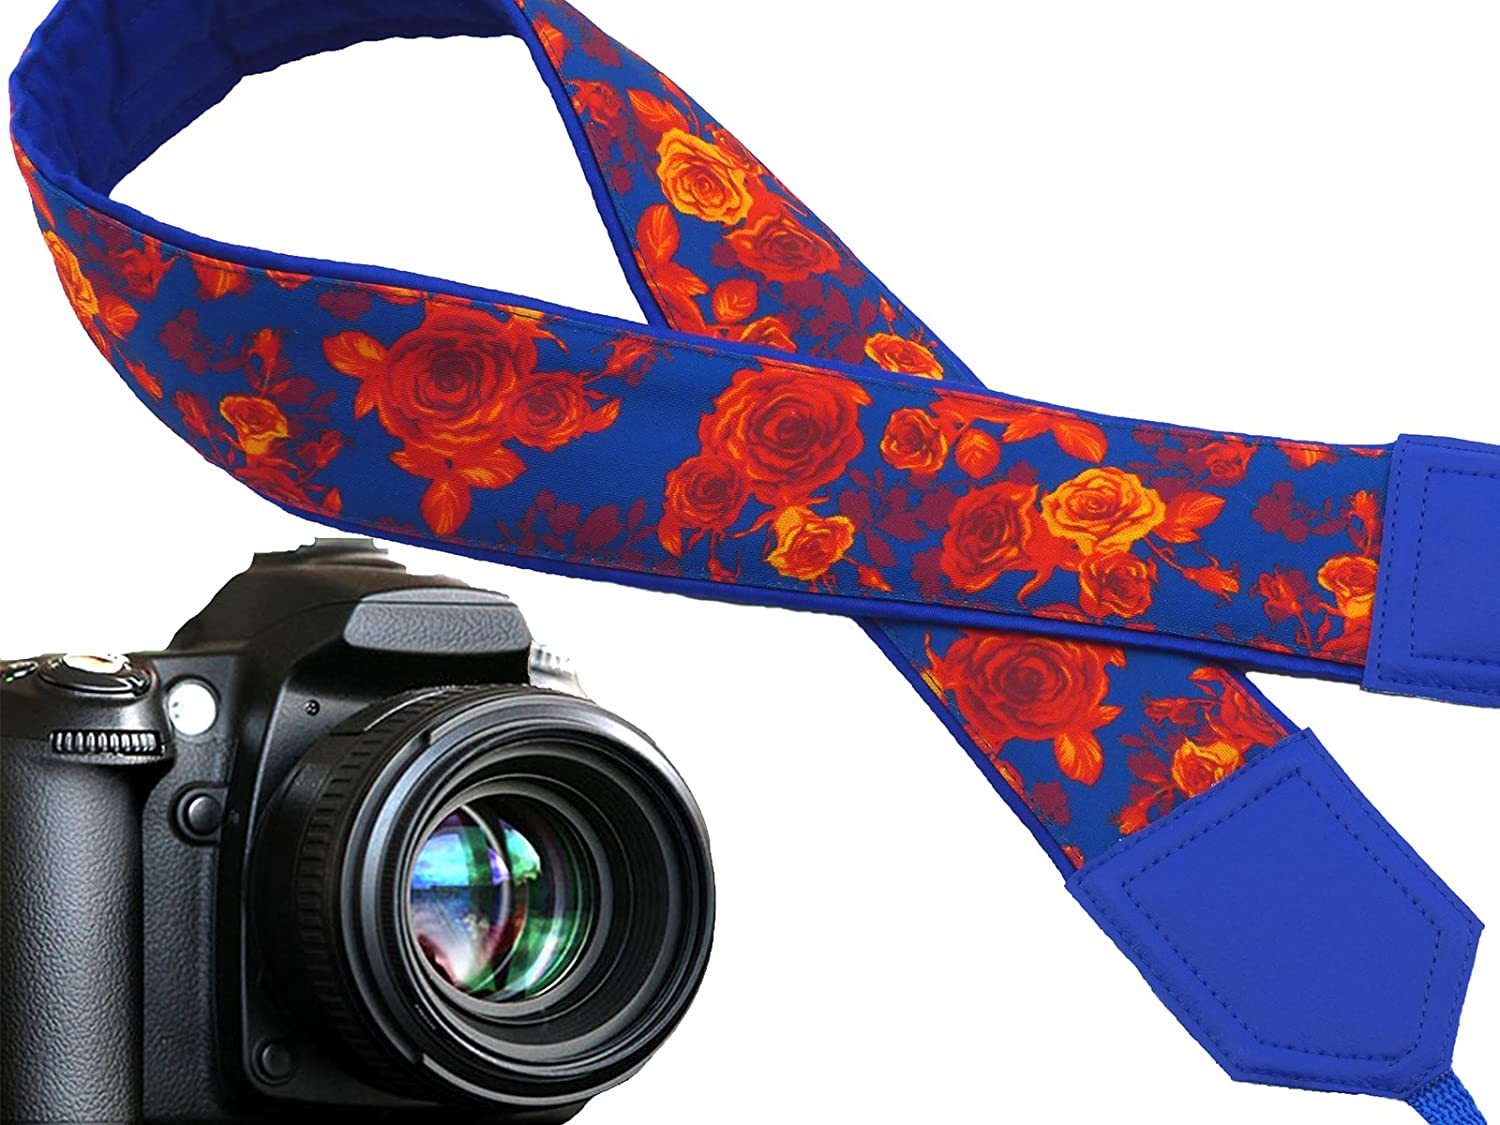 Code 00299 Blue Neck Strap Photography Accessories by InTePro Roses Camera Strap Blue and Orange Flowers DSLR Camera Strap